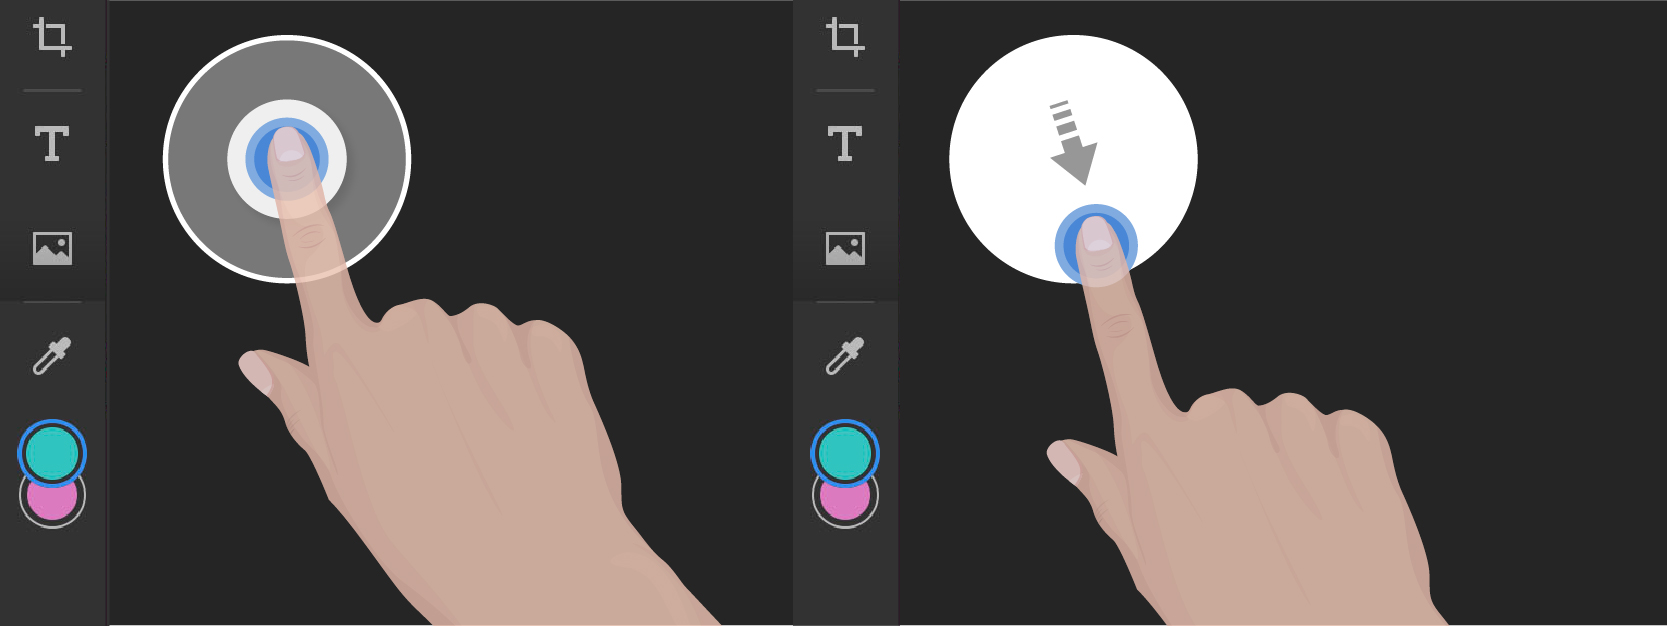 Touch shortcuts for Brush tool